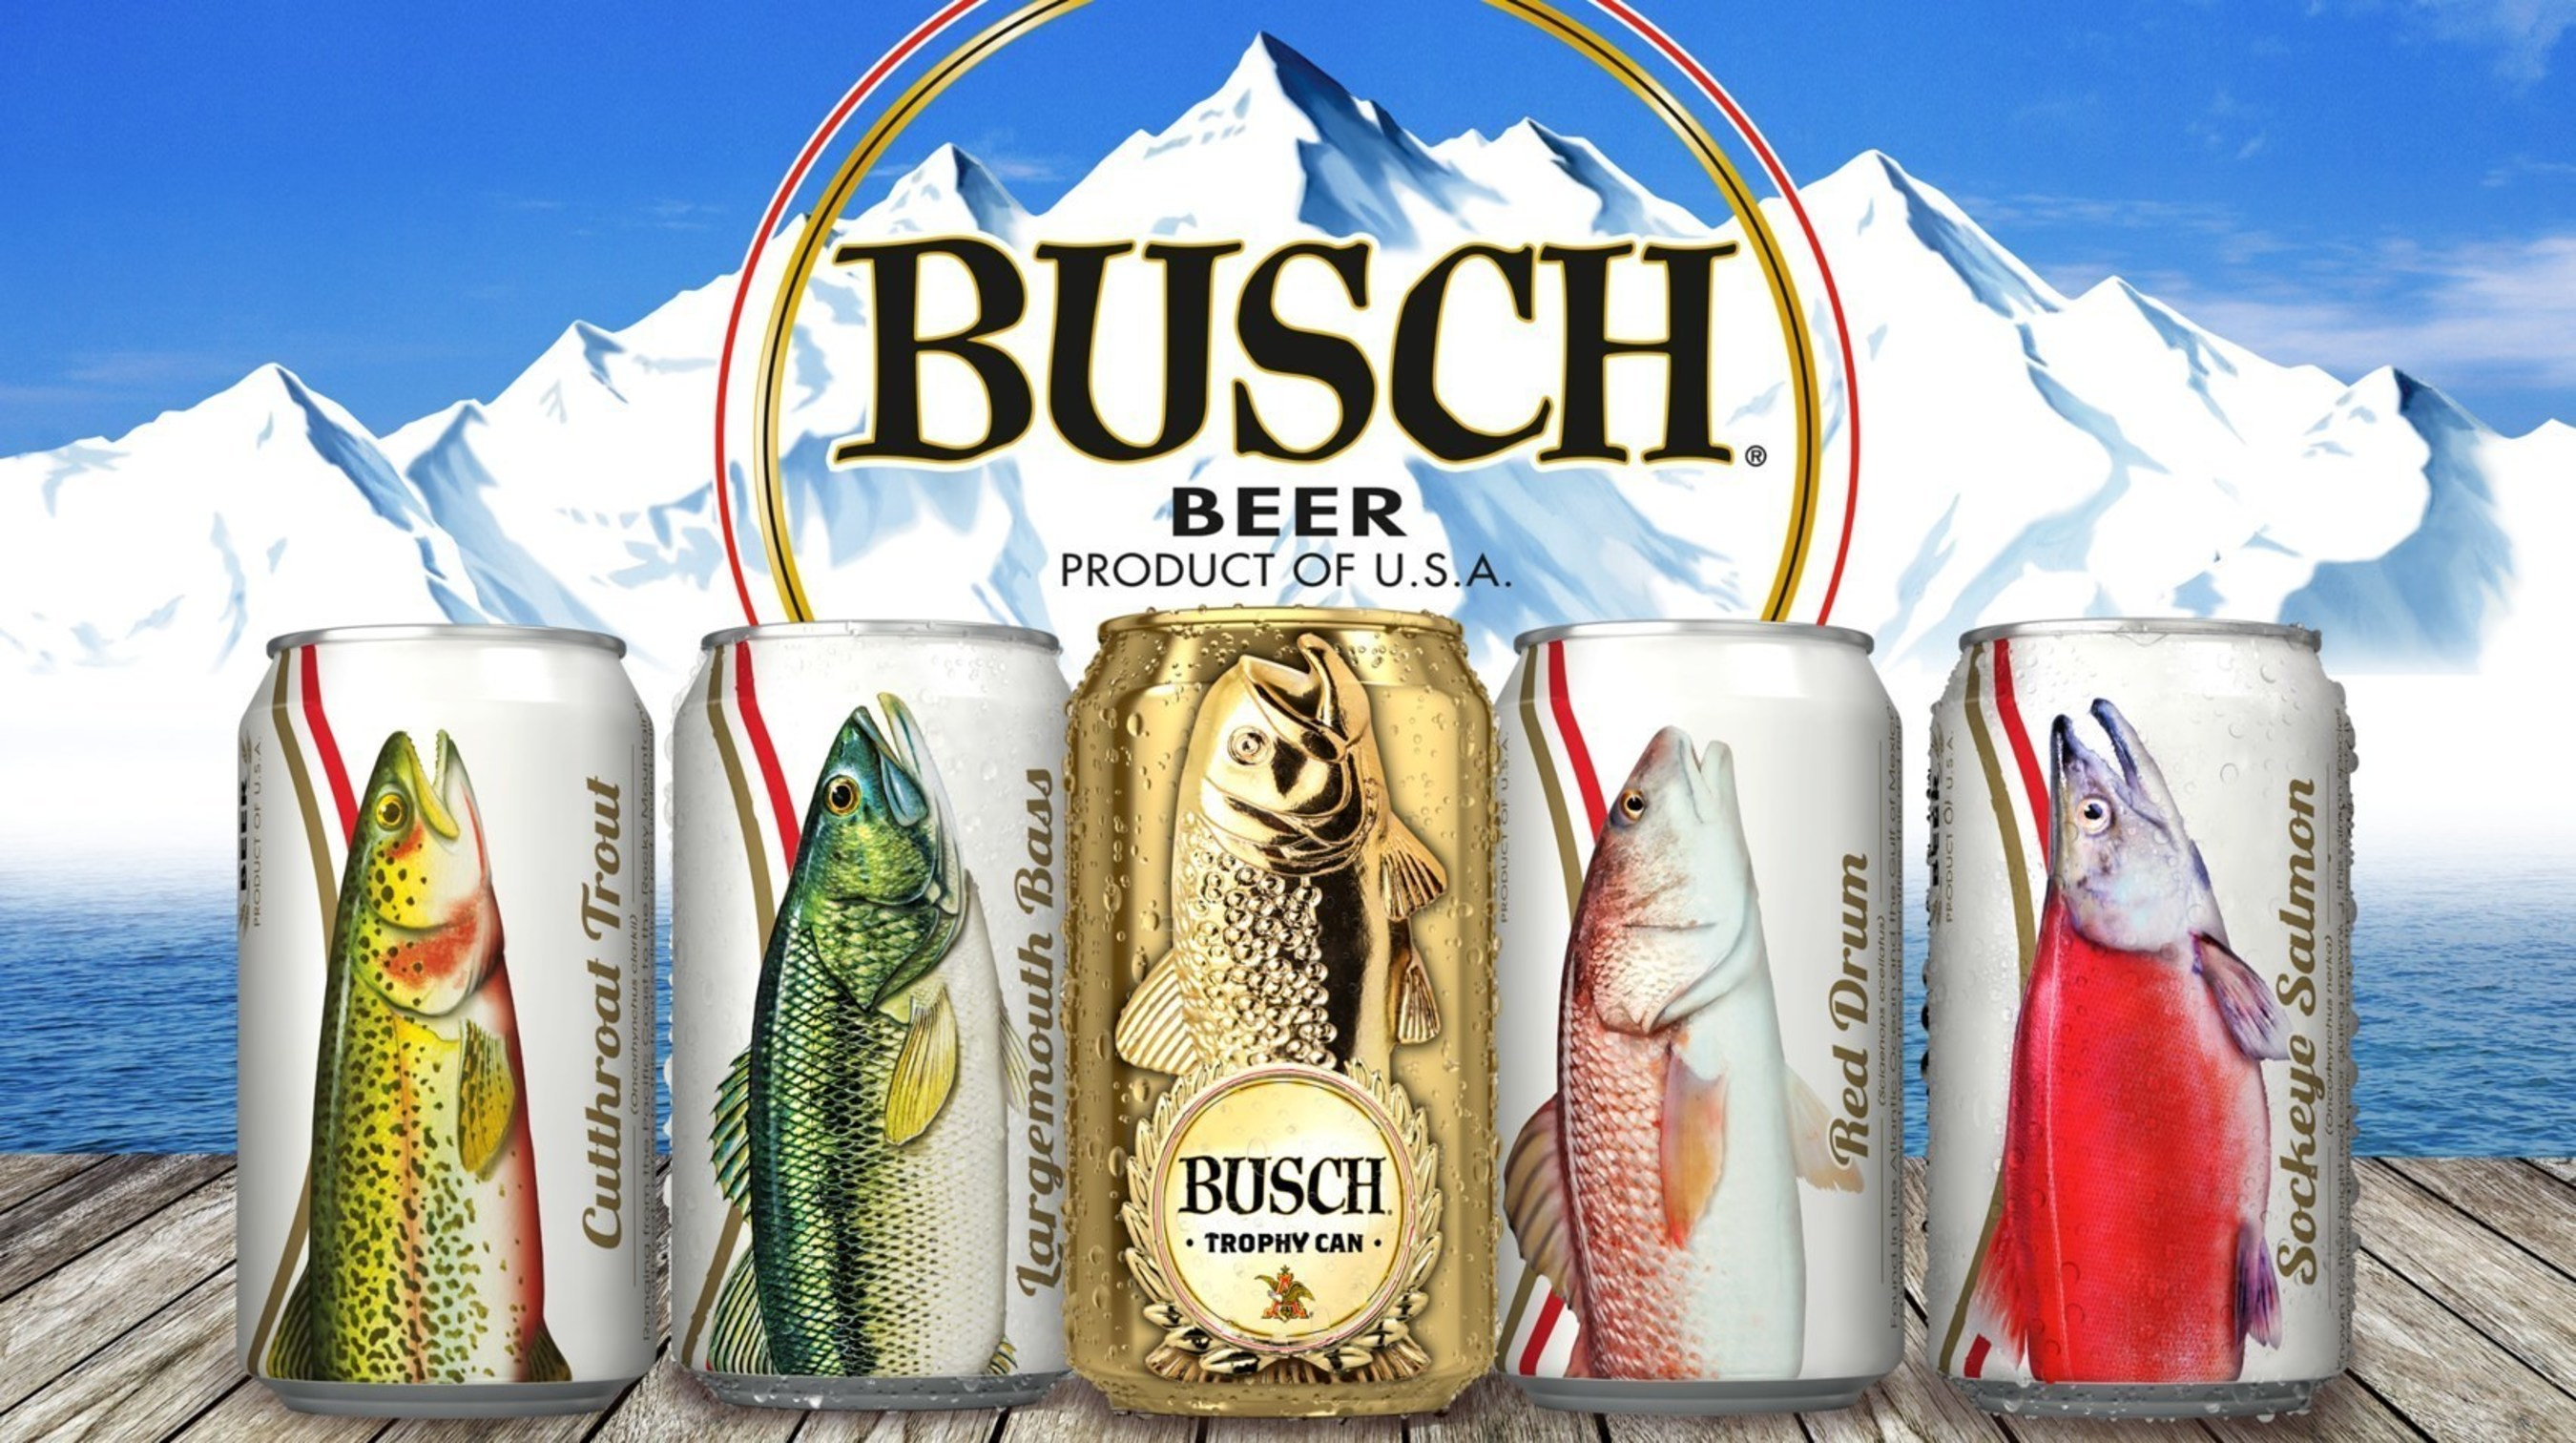 Busch beer's popular fishing promotion is back with a new twist, giving consumers the chance to win the ultimate fishing getaway with pro fisherman and seven time Angler of the Year, Kevin VanDam. Consumers who find one of the 100,000 gold trophy cans randomly seeded in packs of Busch and Busch Light can capture a photo of themselves with the can and submit it online via Busch.com.